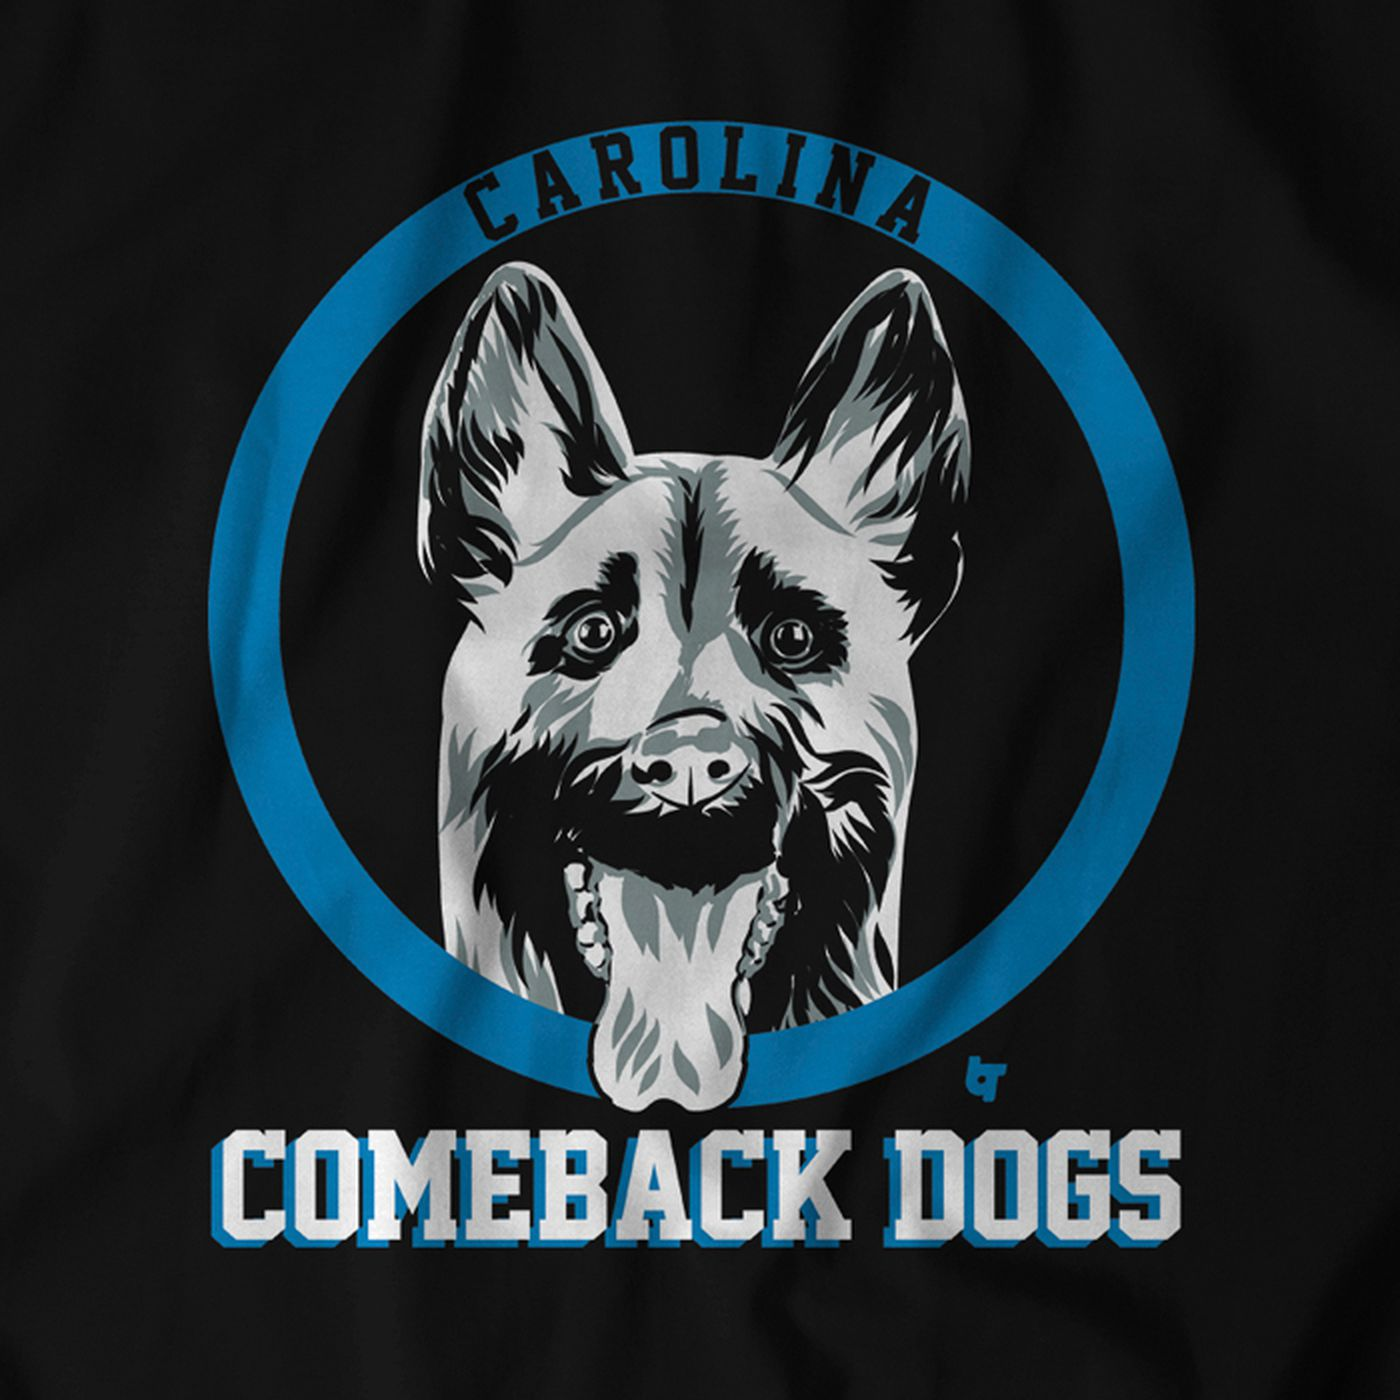 63a98152012 Get your 'Carolina Comeback Dogs' t-shirt from Breaking T! - Cat Scratch  Reader